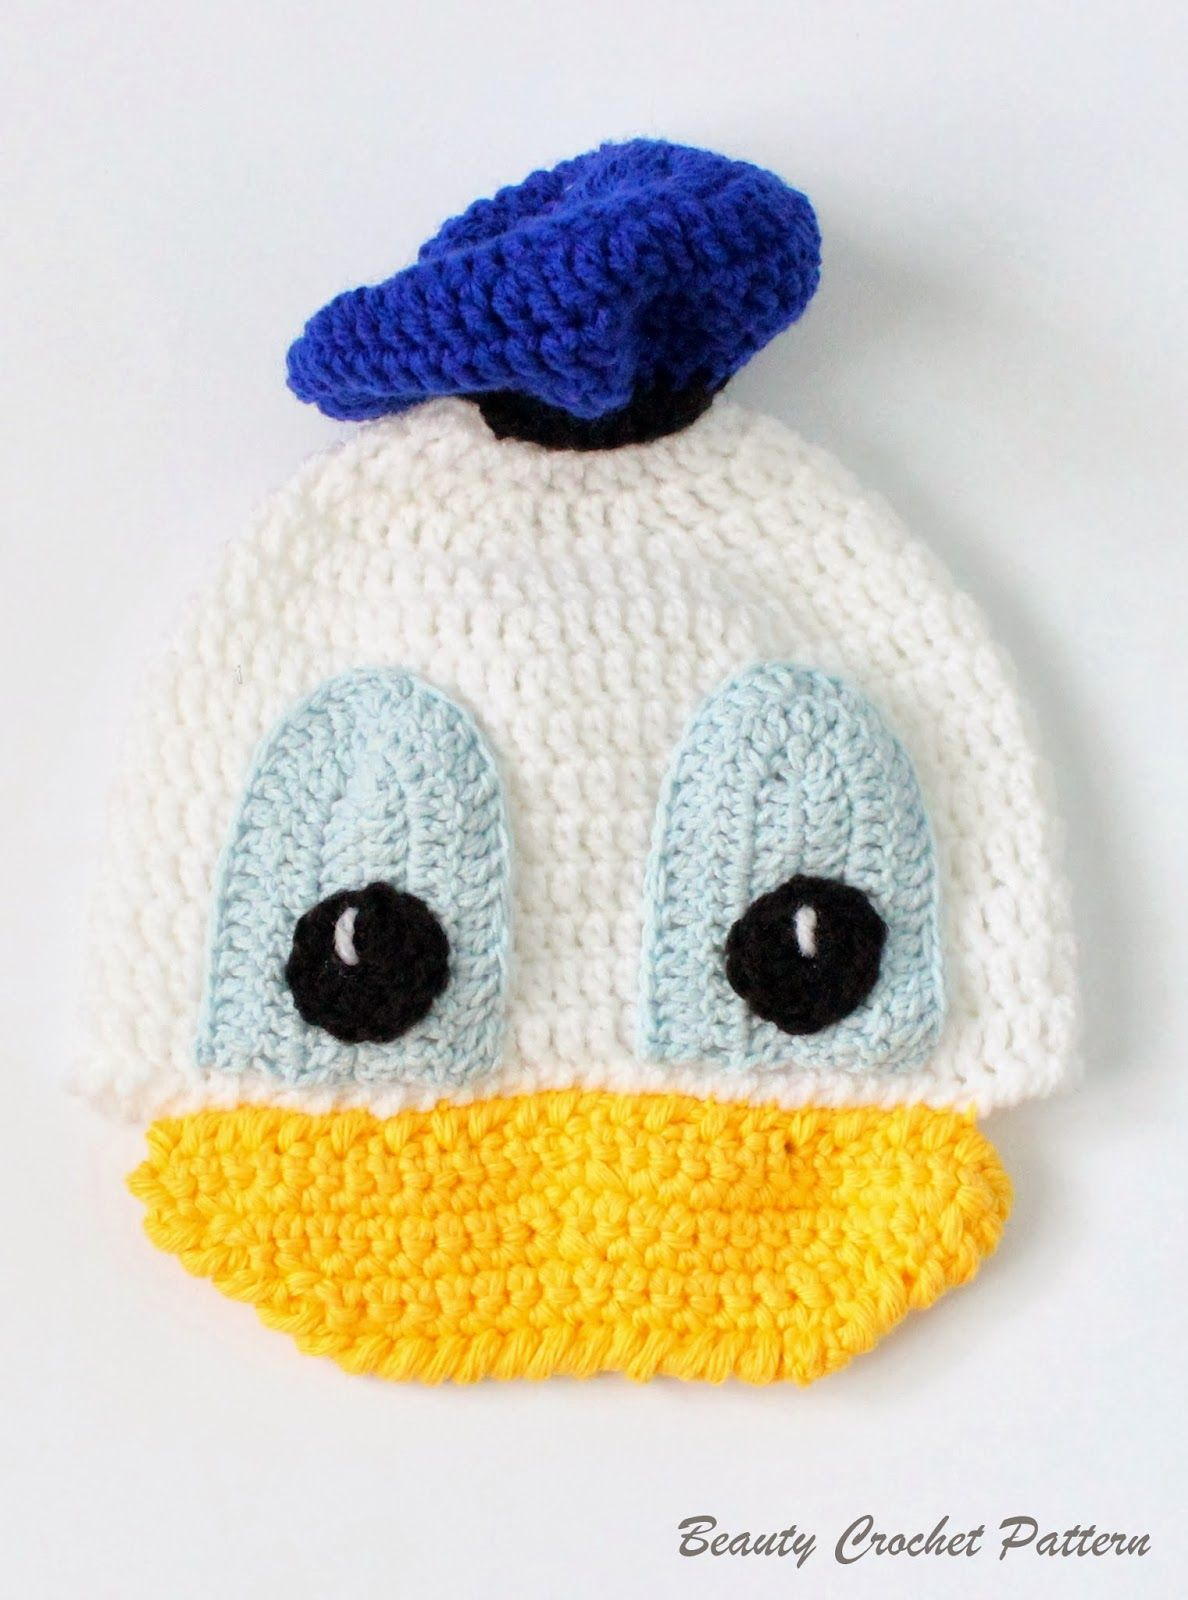 Donald Crochet Hat Pattern by Beauty Crochet Pattern Daisy was ...